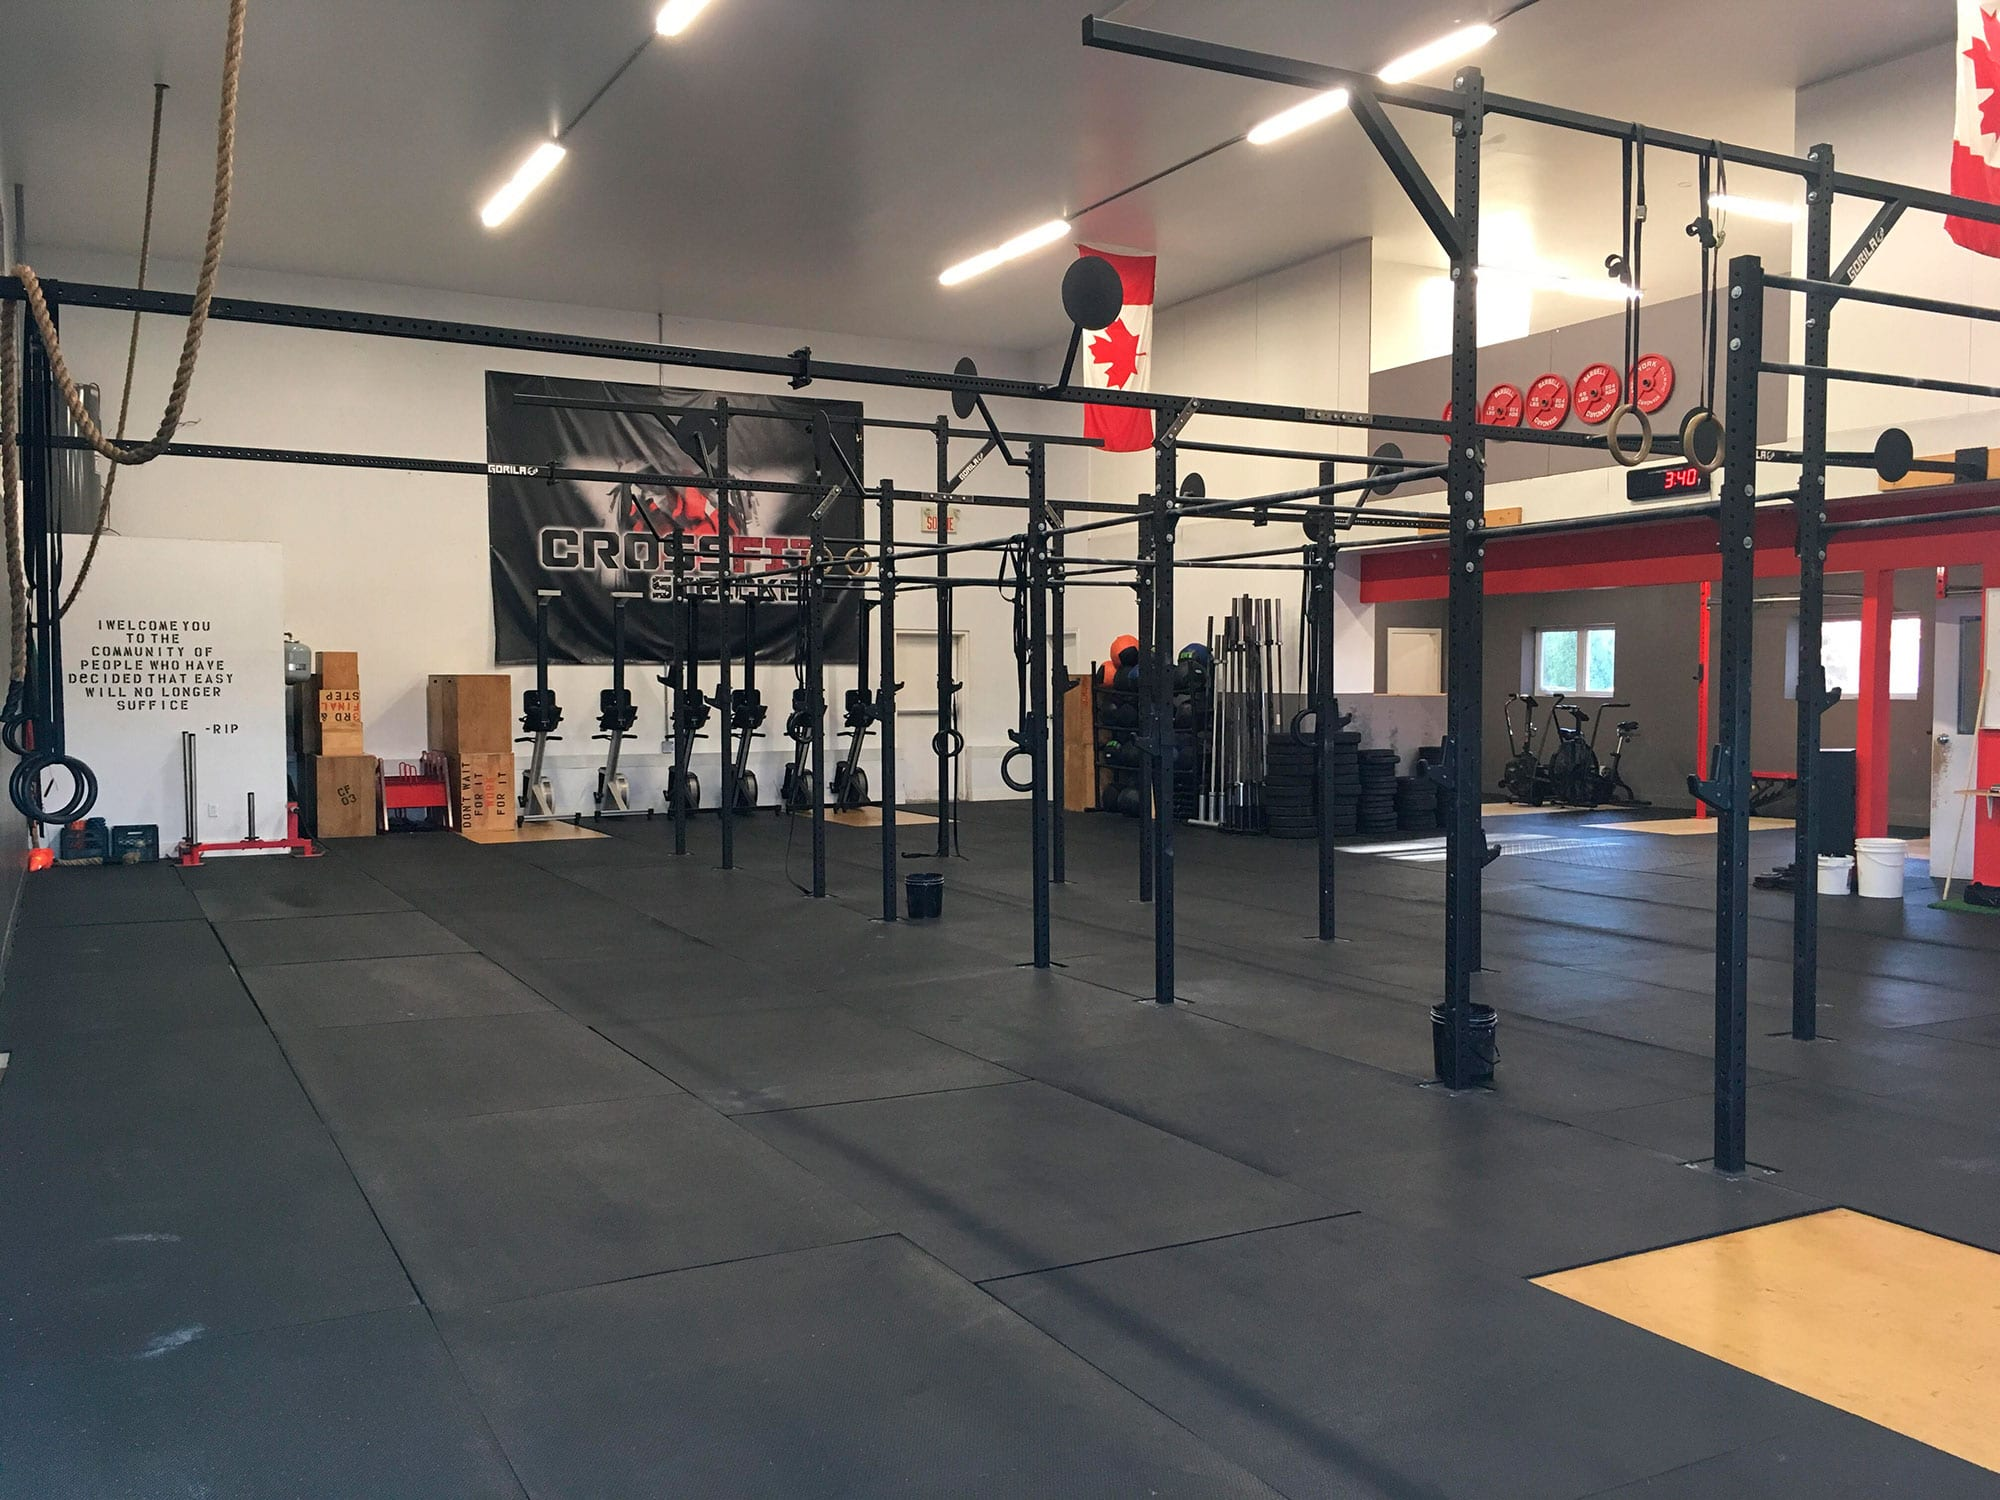 Crossfit stricken installations